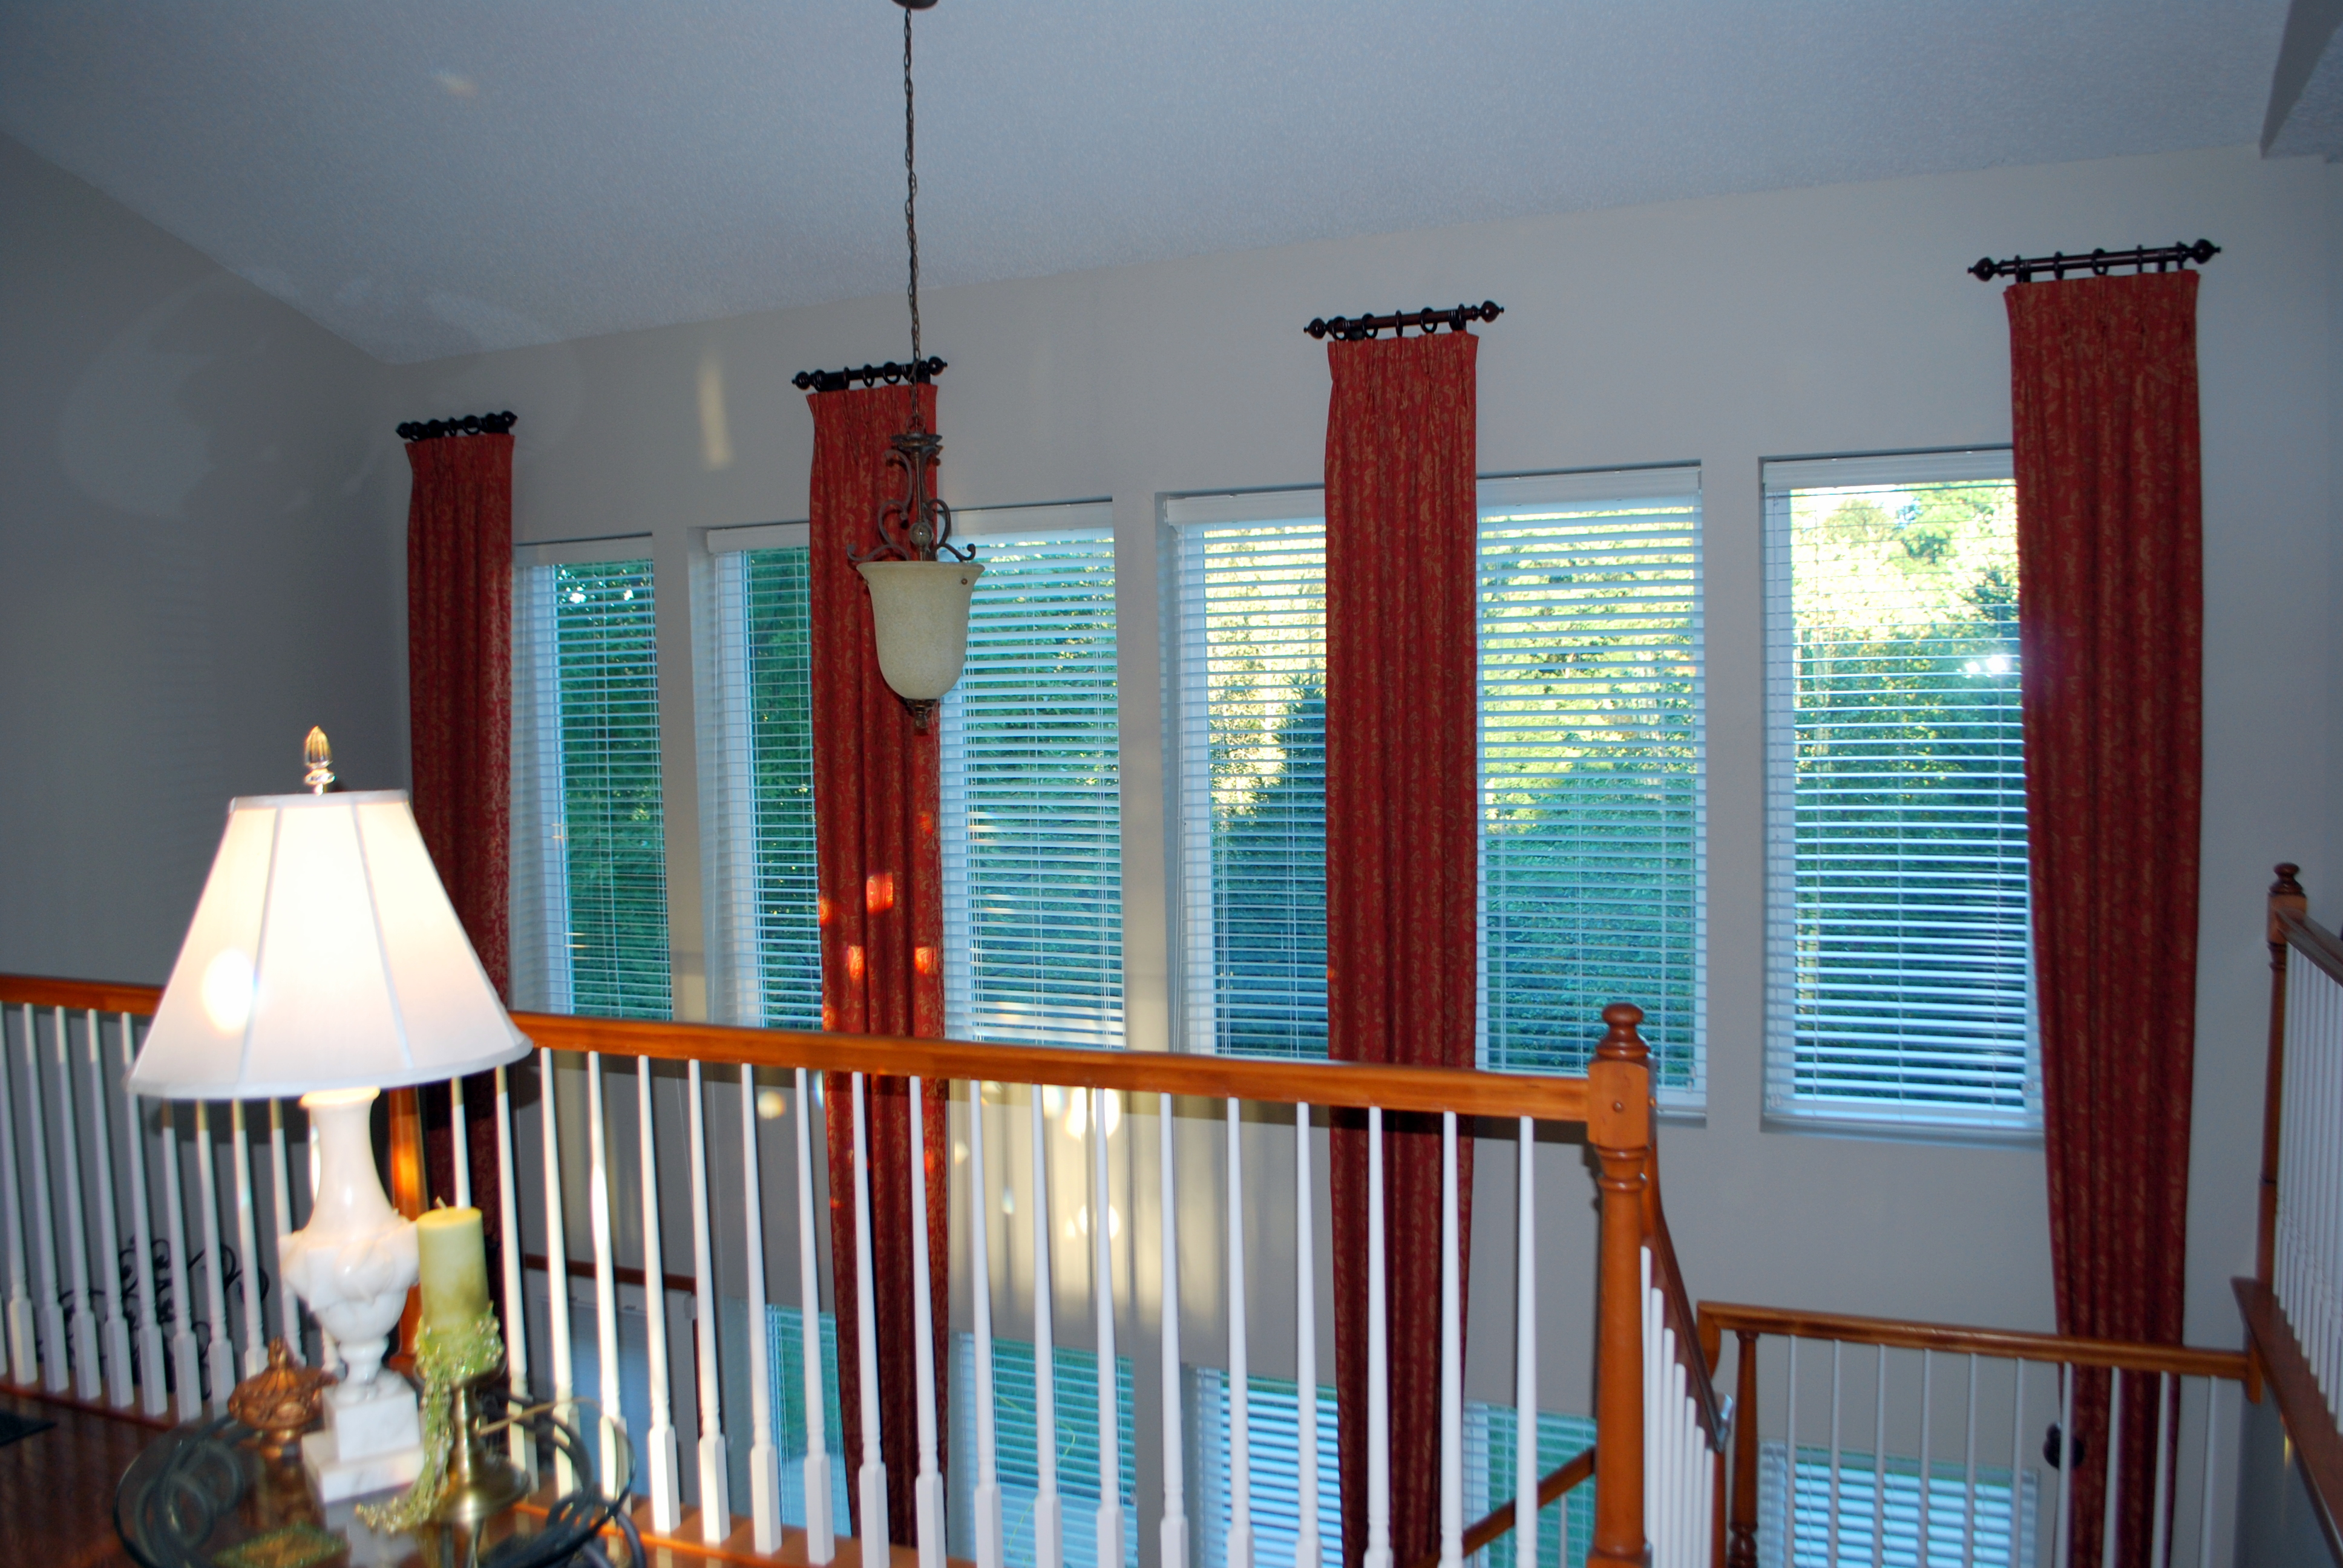 decorative windows of room image shades drapes used rv living and t camper killer grommet rods more decoration window using drapery